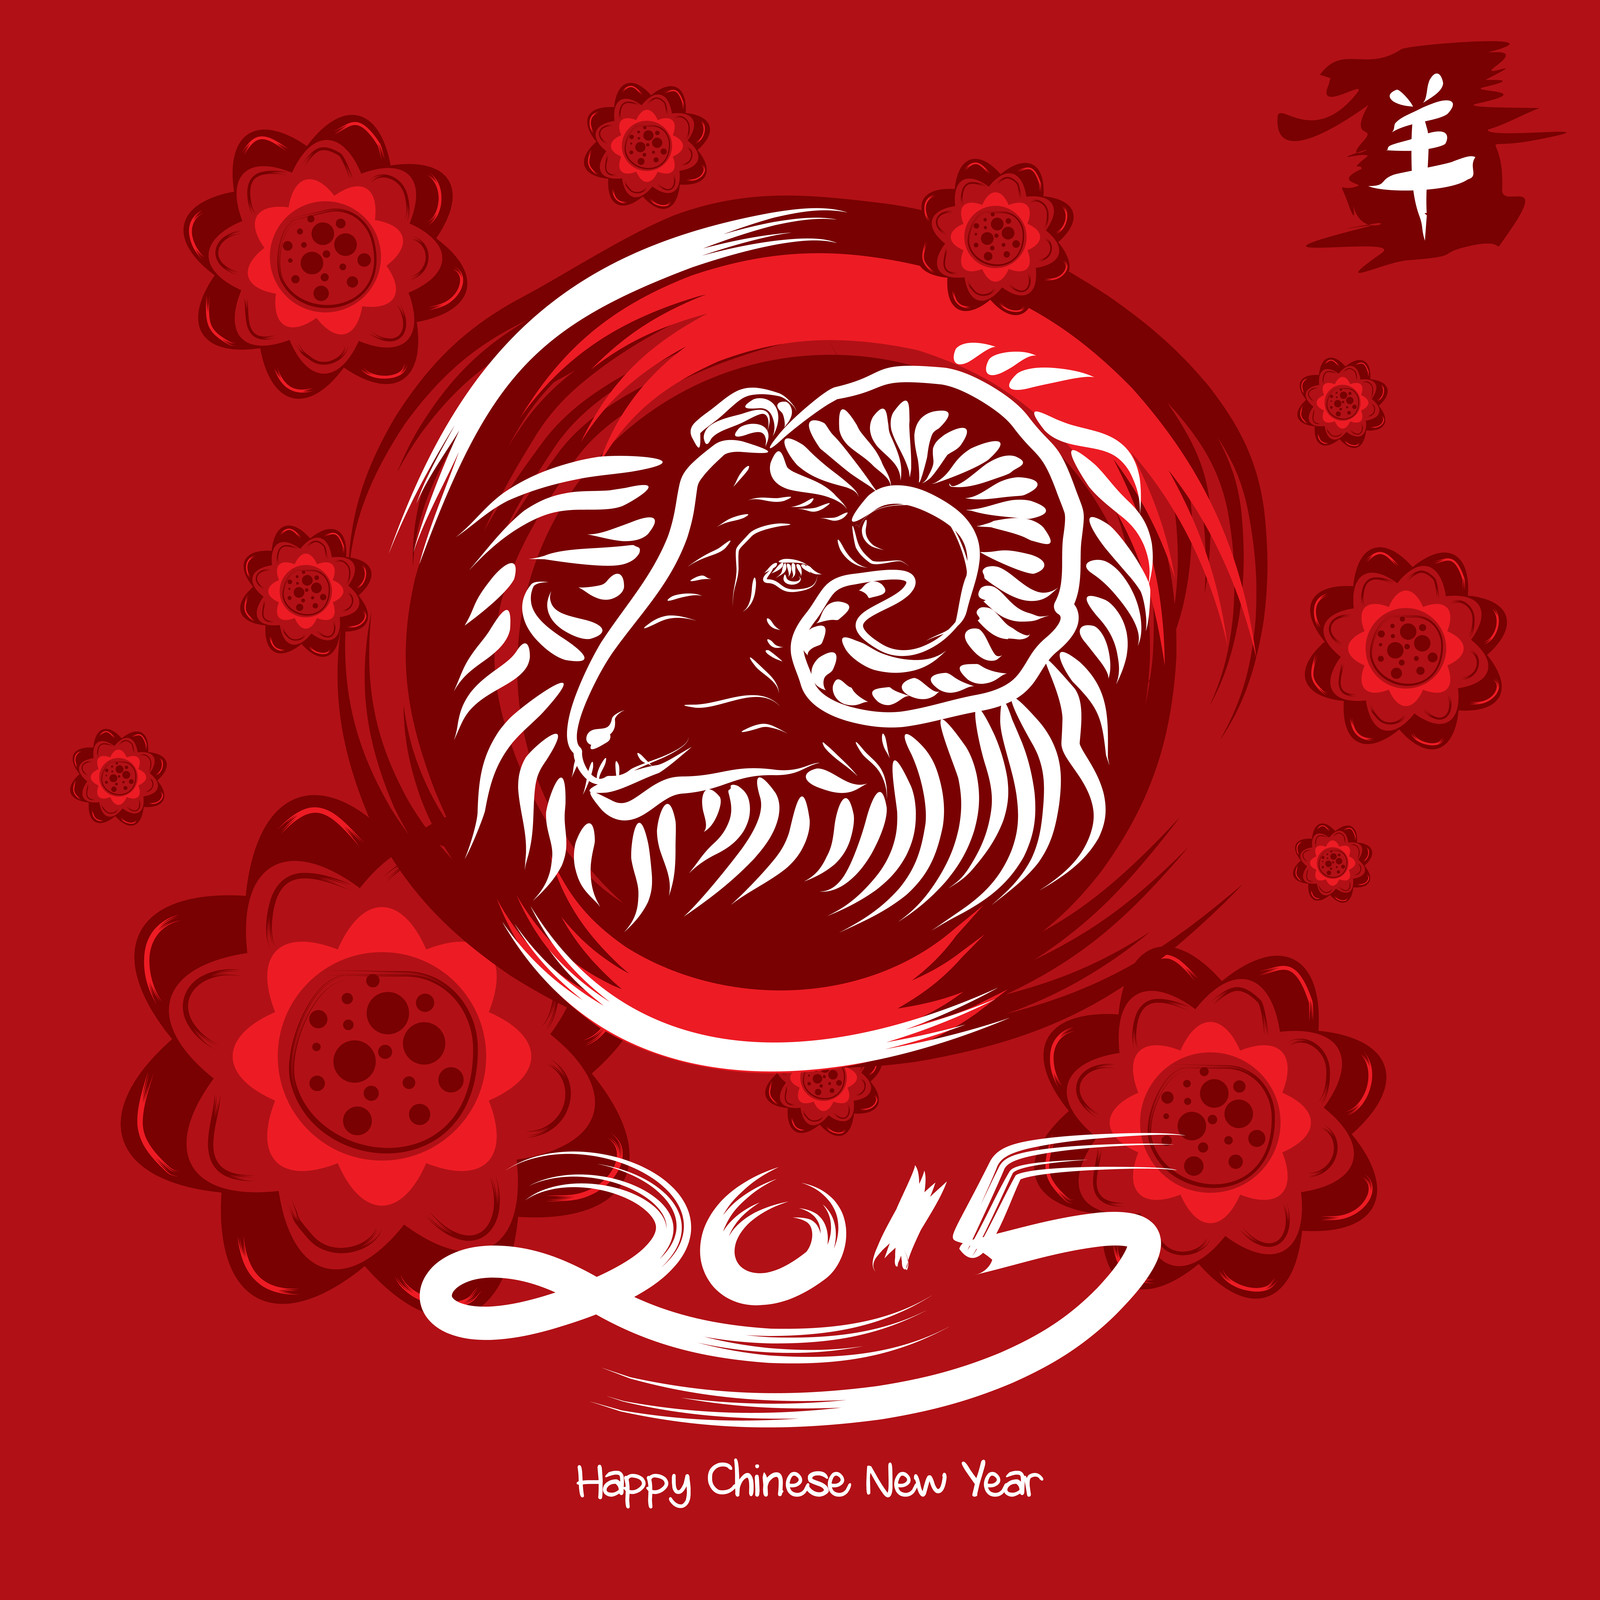 happy chinese new year 2015 – the year of the wood ram (goat or